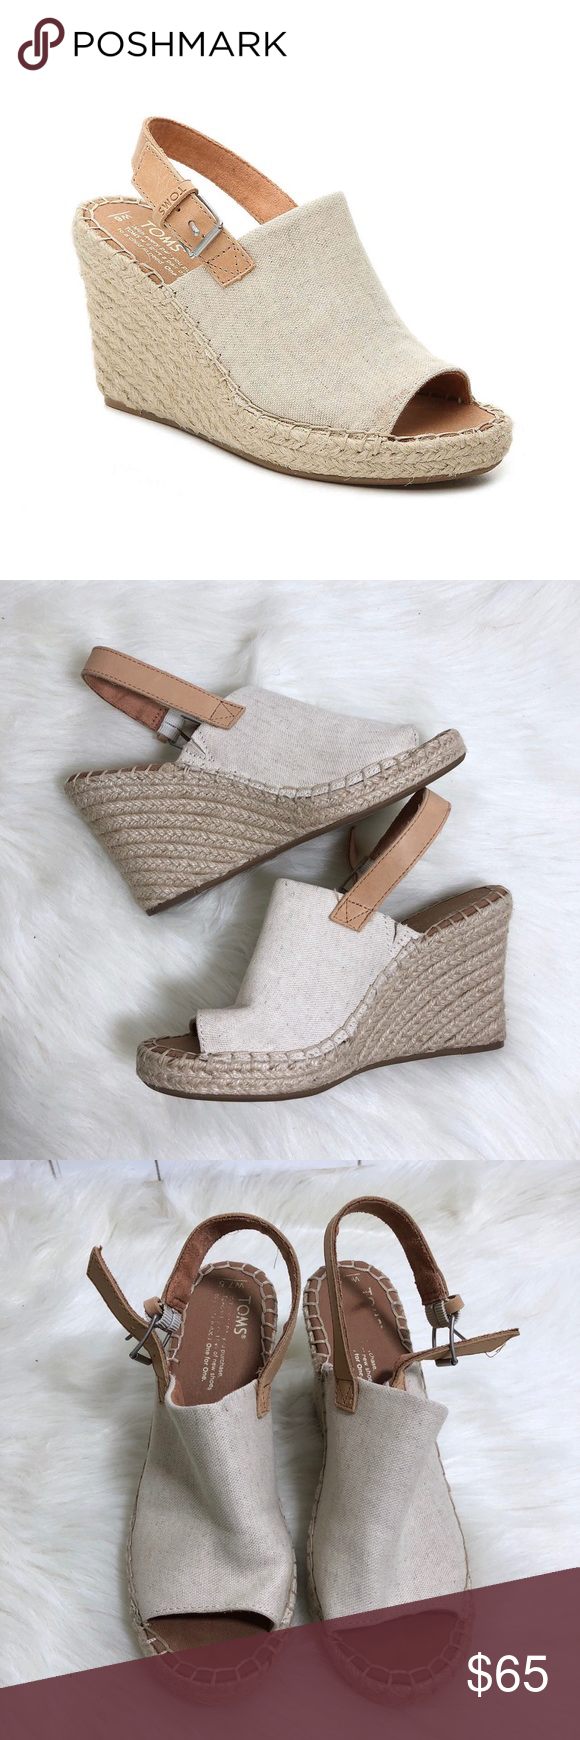 ebb06c54918 Toms Monica Espadrille Platform Wedge Sandal Toms Monica Espadrille  Platform Wedge Sandal Gently used. Excellent condition! Off white  tan  color.